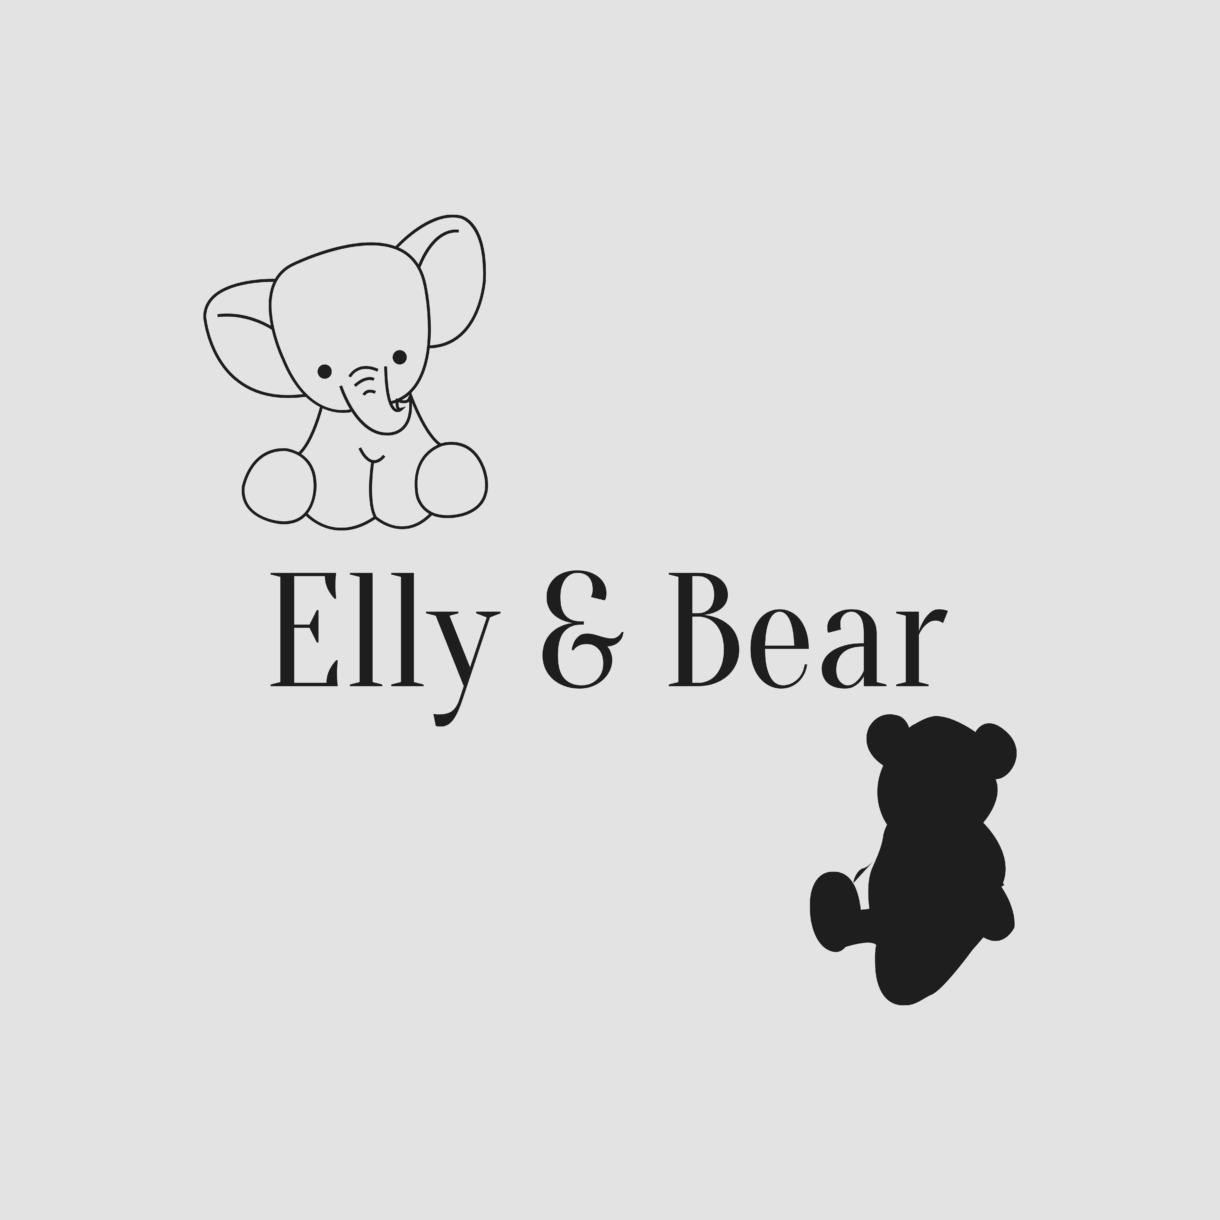 Elly and Bear